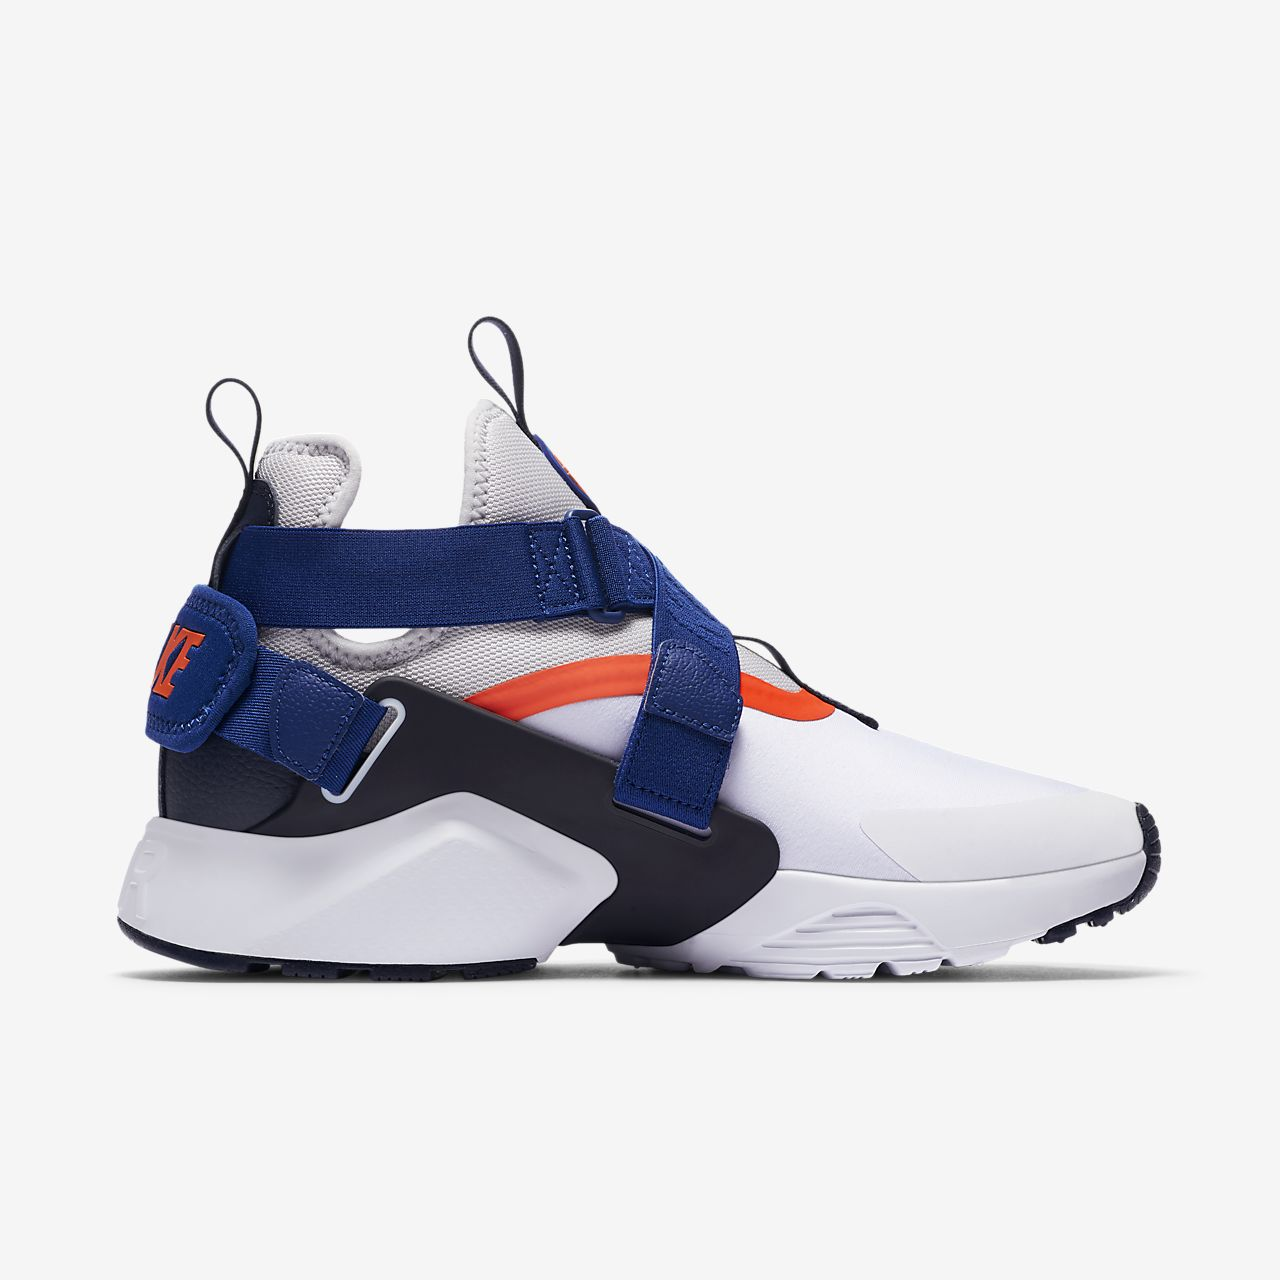 NIB*Nike*Air Huarache City Sneaker*White Blue Crimson Grey*5 -12*Women